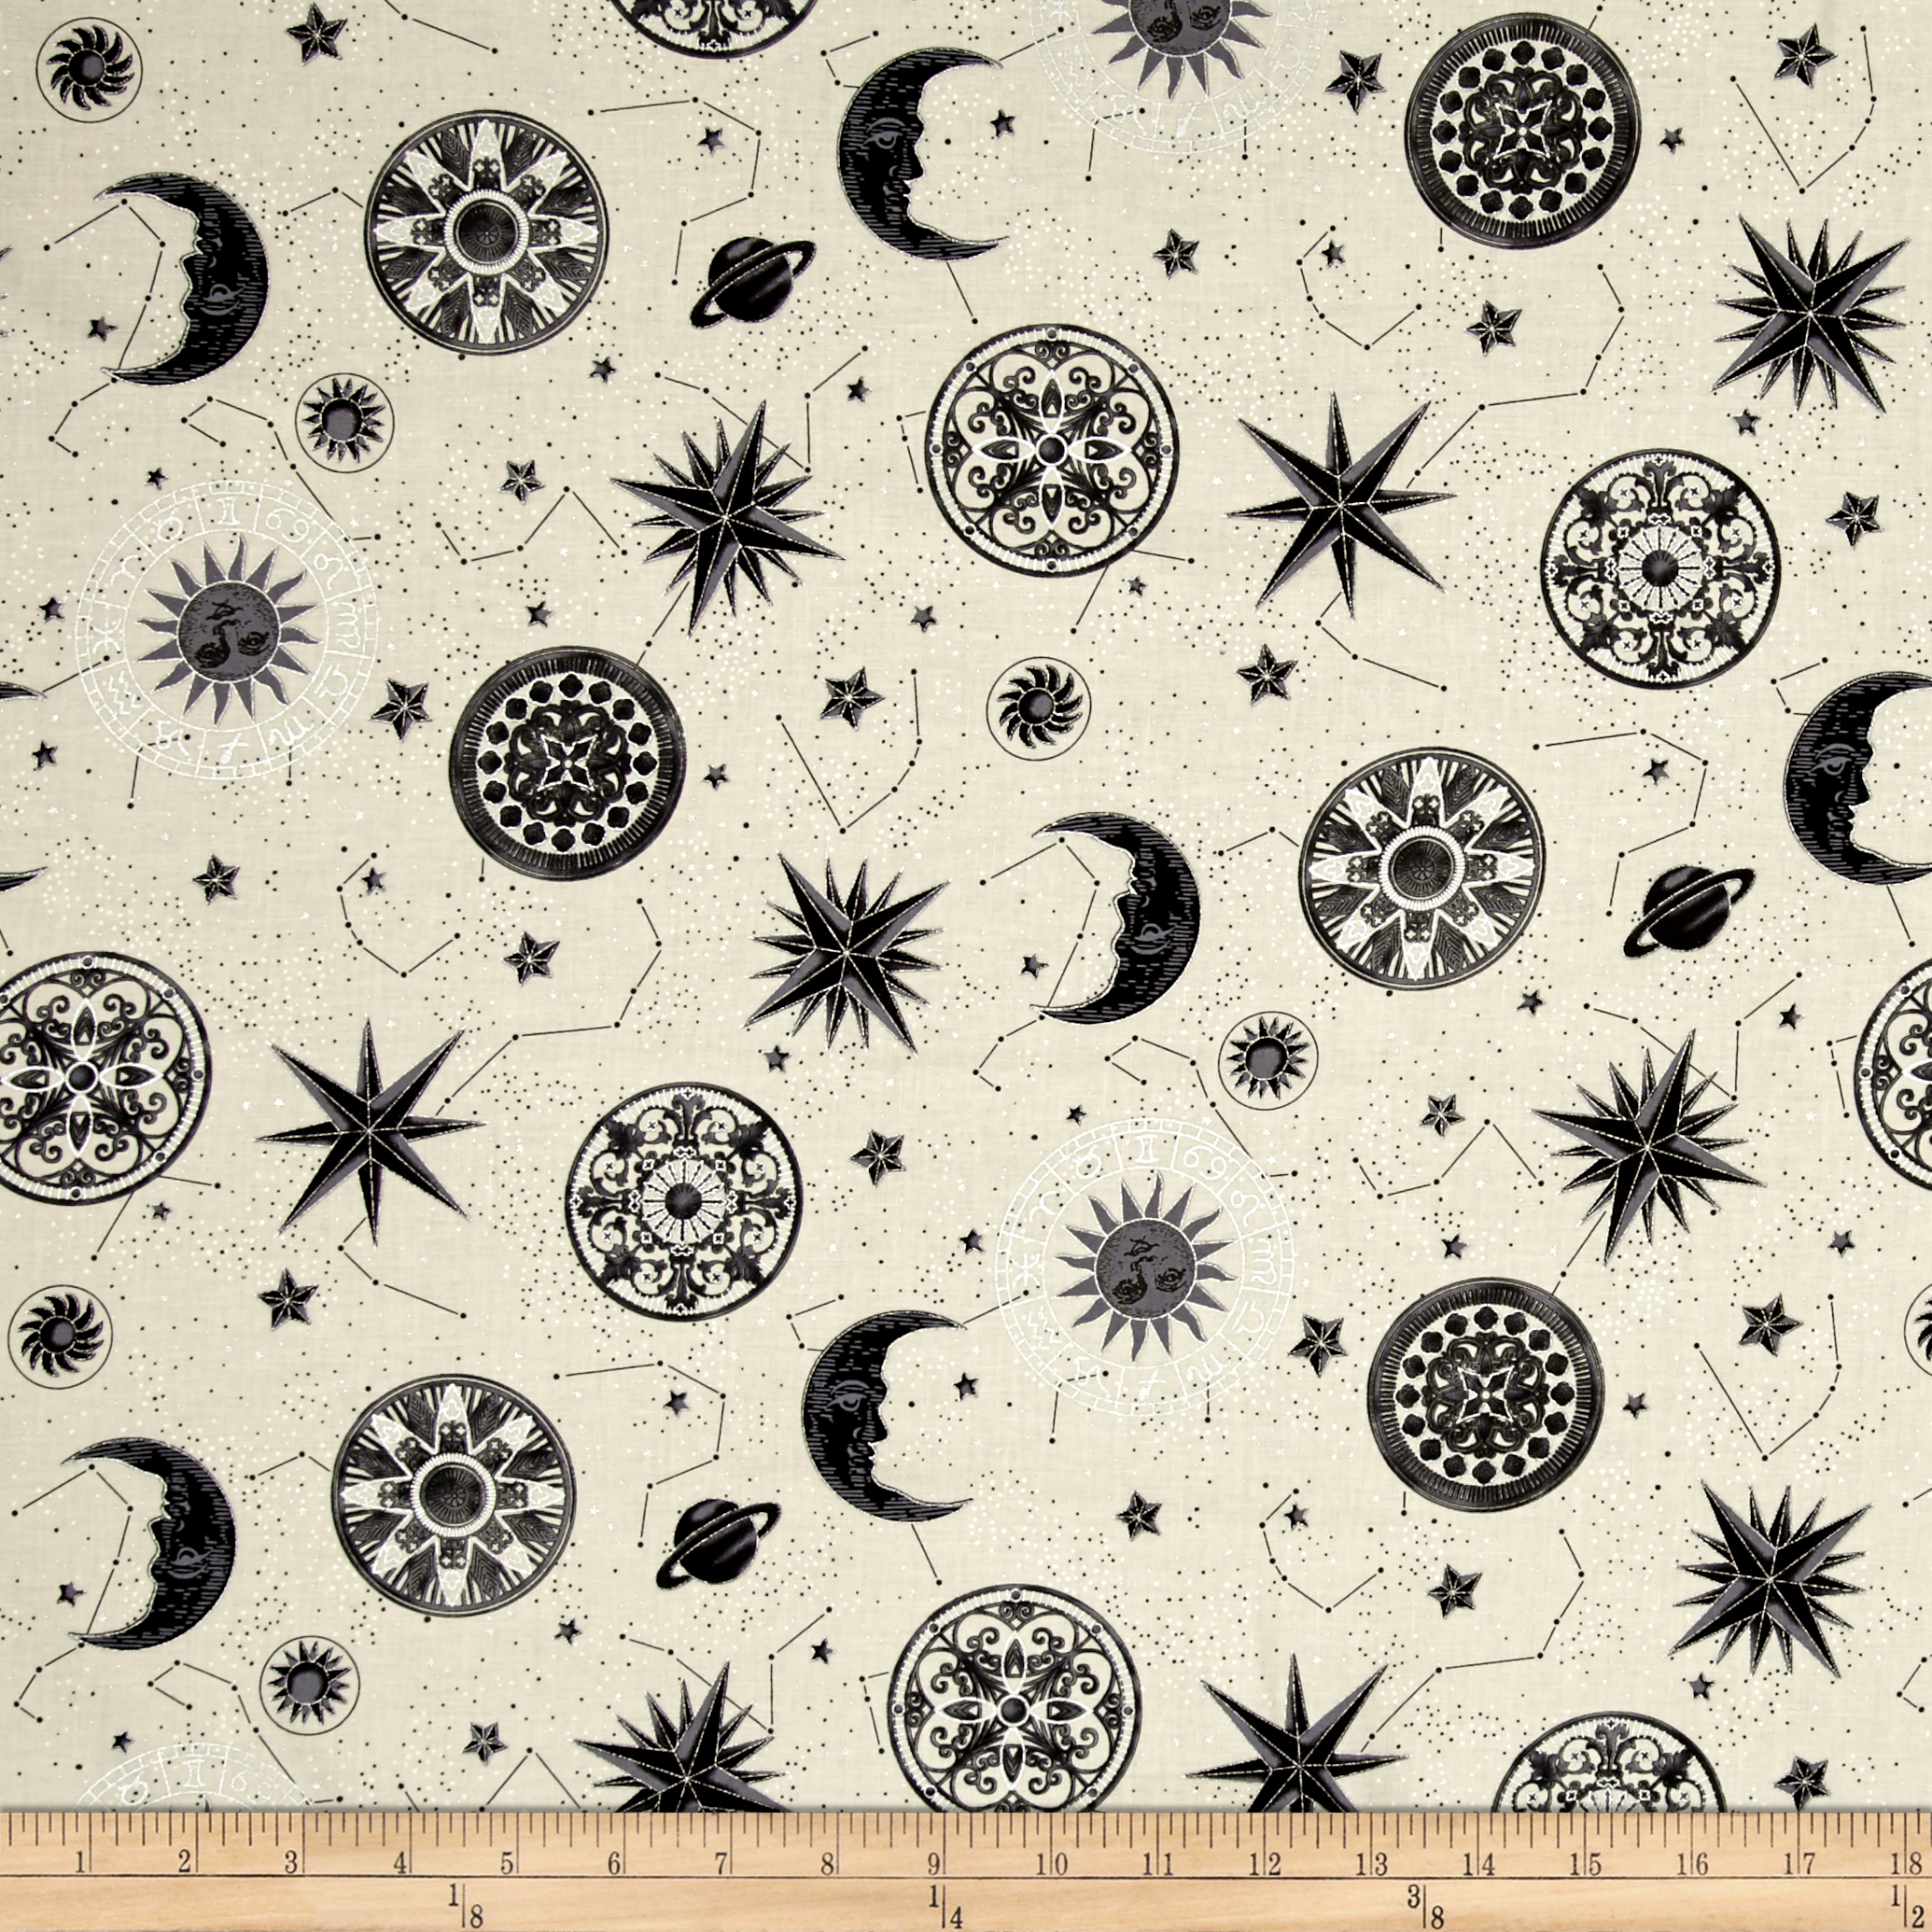 Star Gazing Metallic Moons And Stars Parchment/Silver Fabric by Hoffman of California in USA